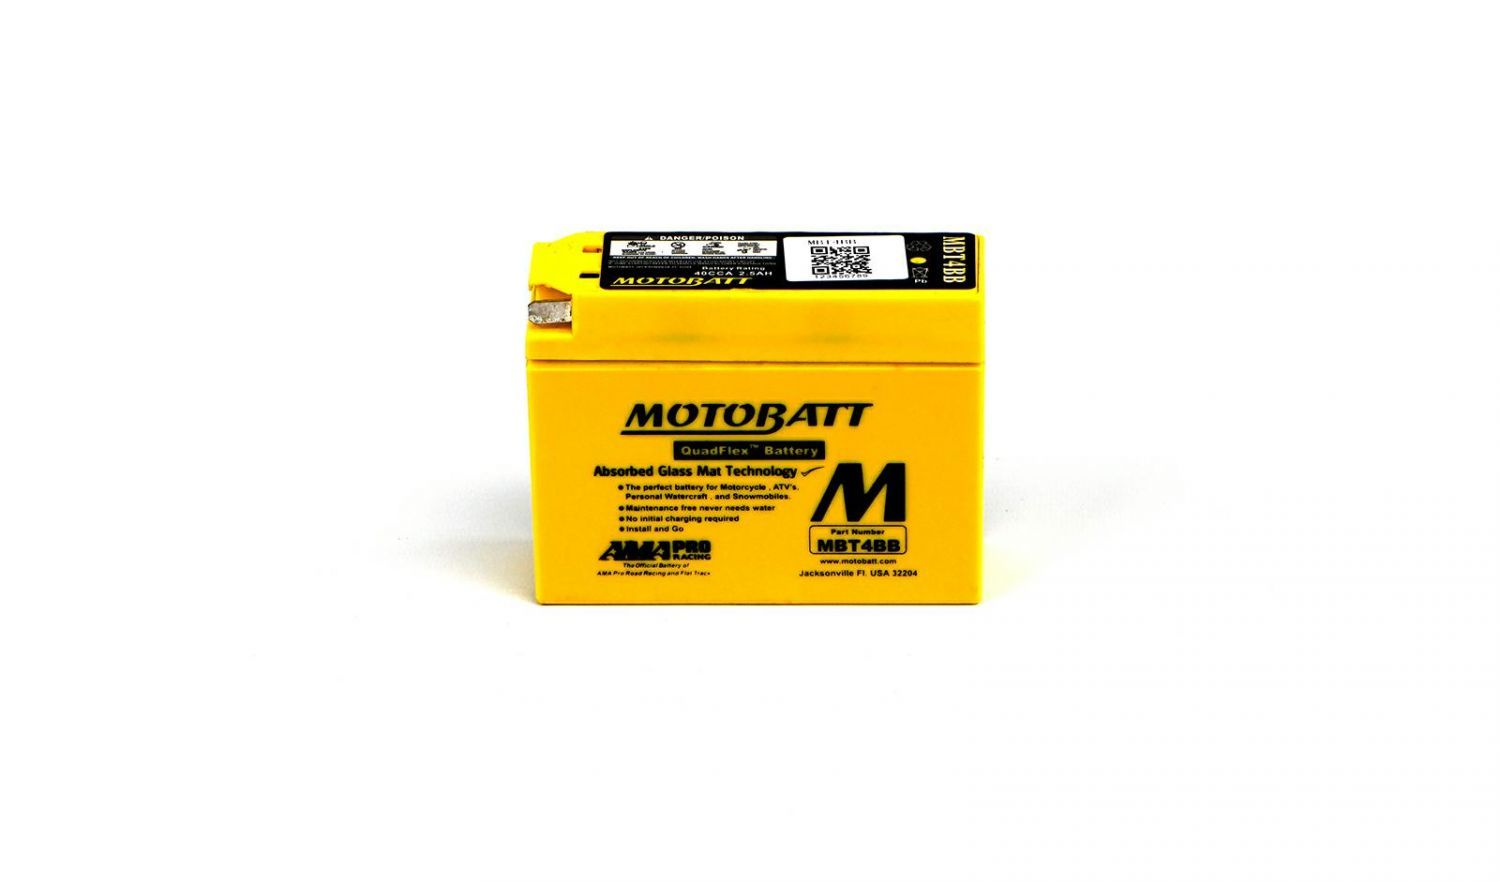 Motobatt Batteries - 501044MY image